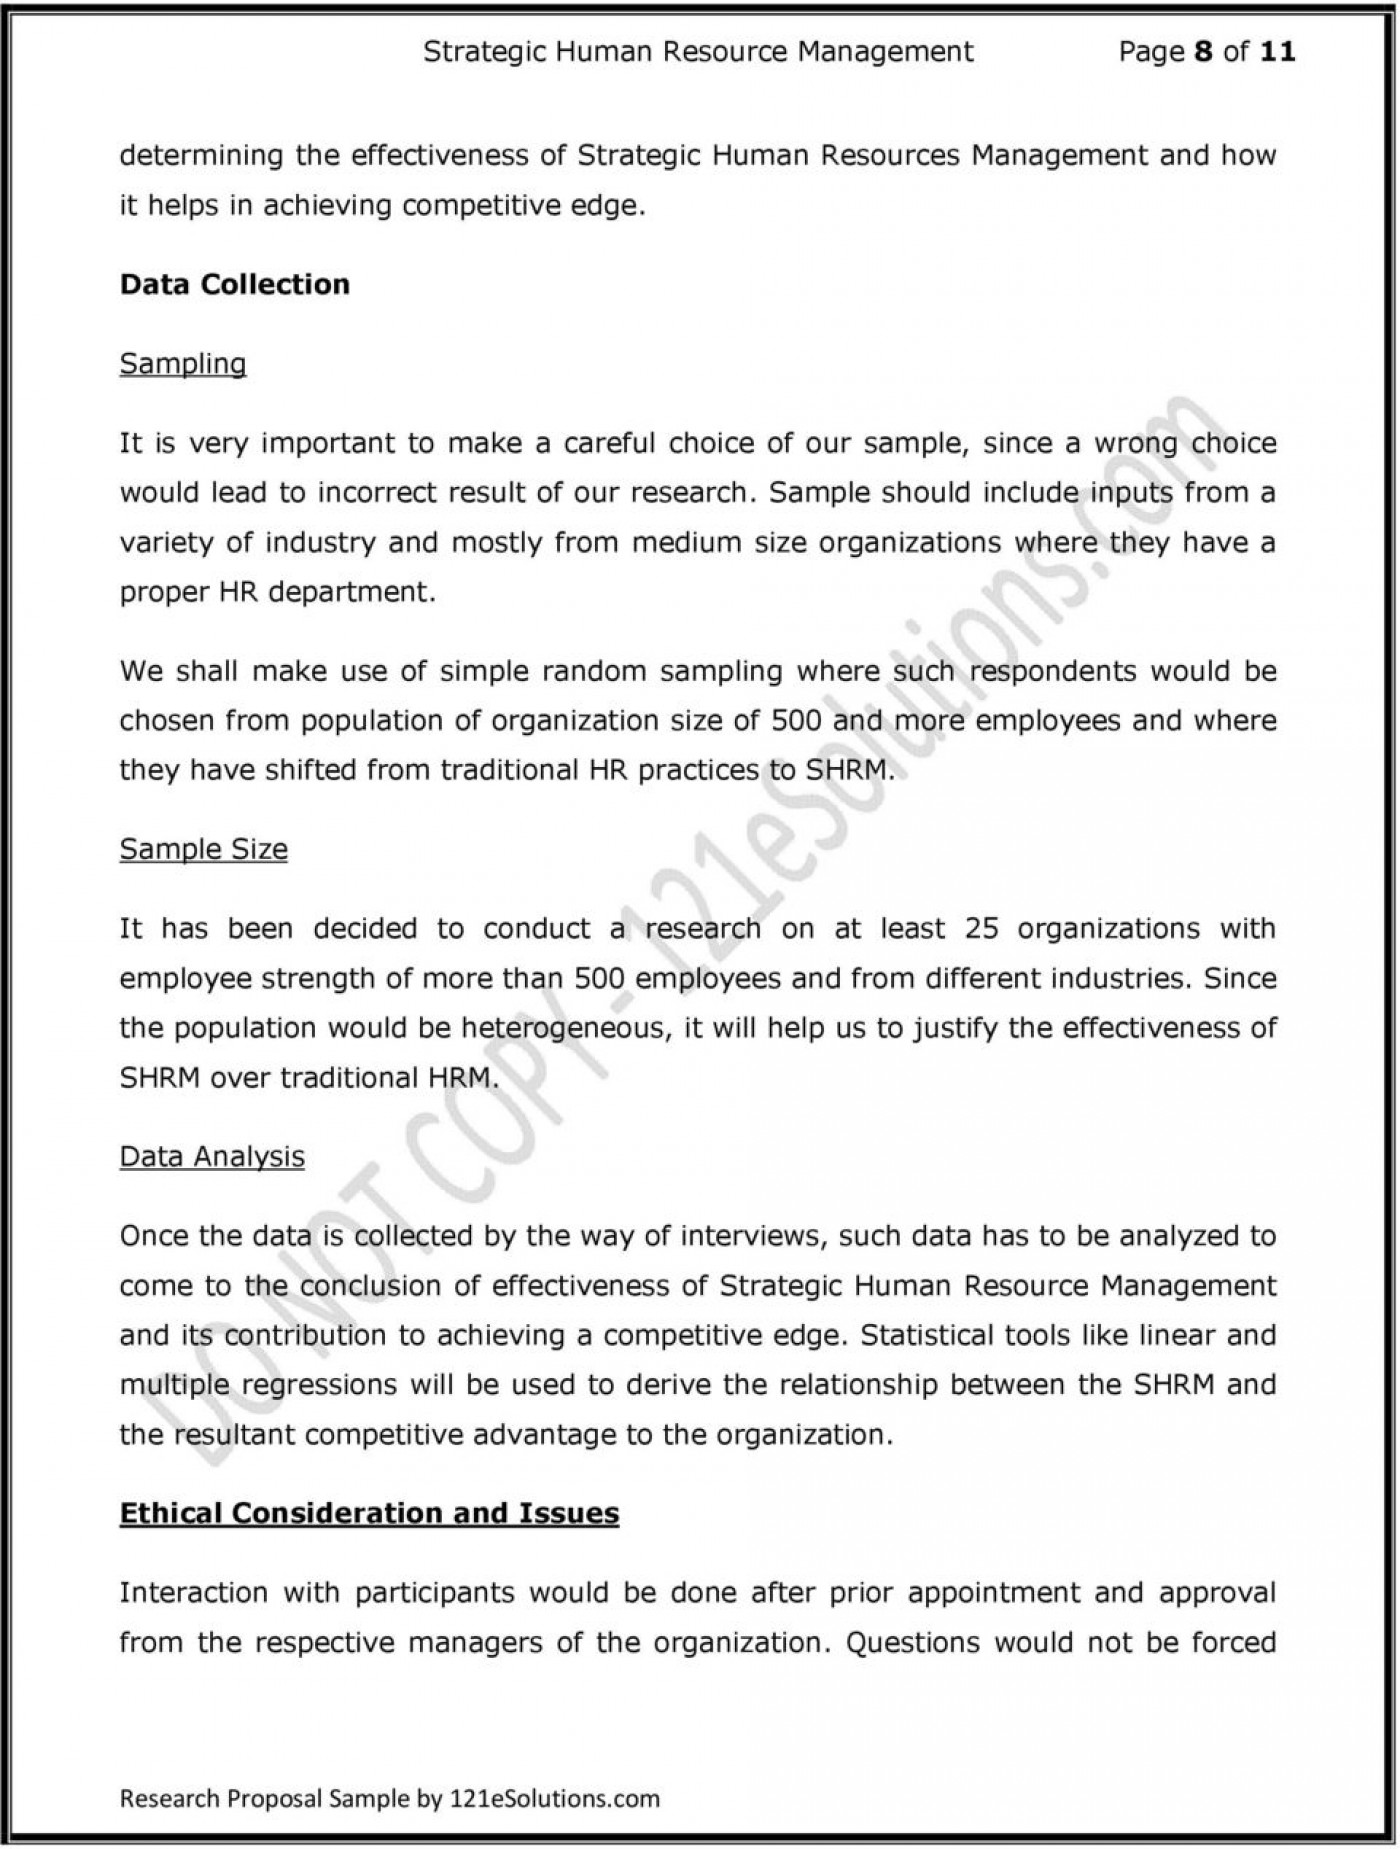 013 Action Research Proposal Paper Examples Page 8 Breathtaking Sample Papers 1400